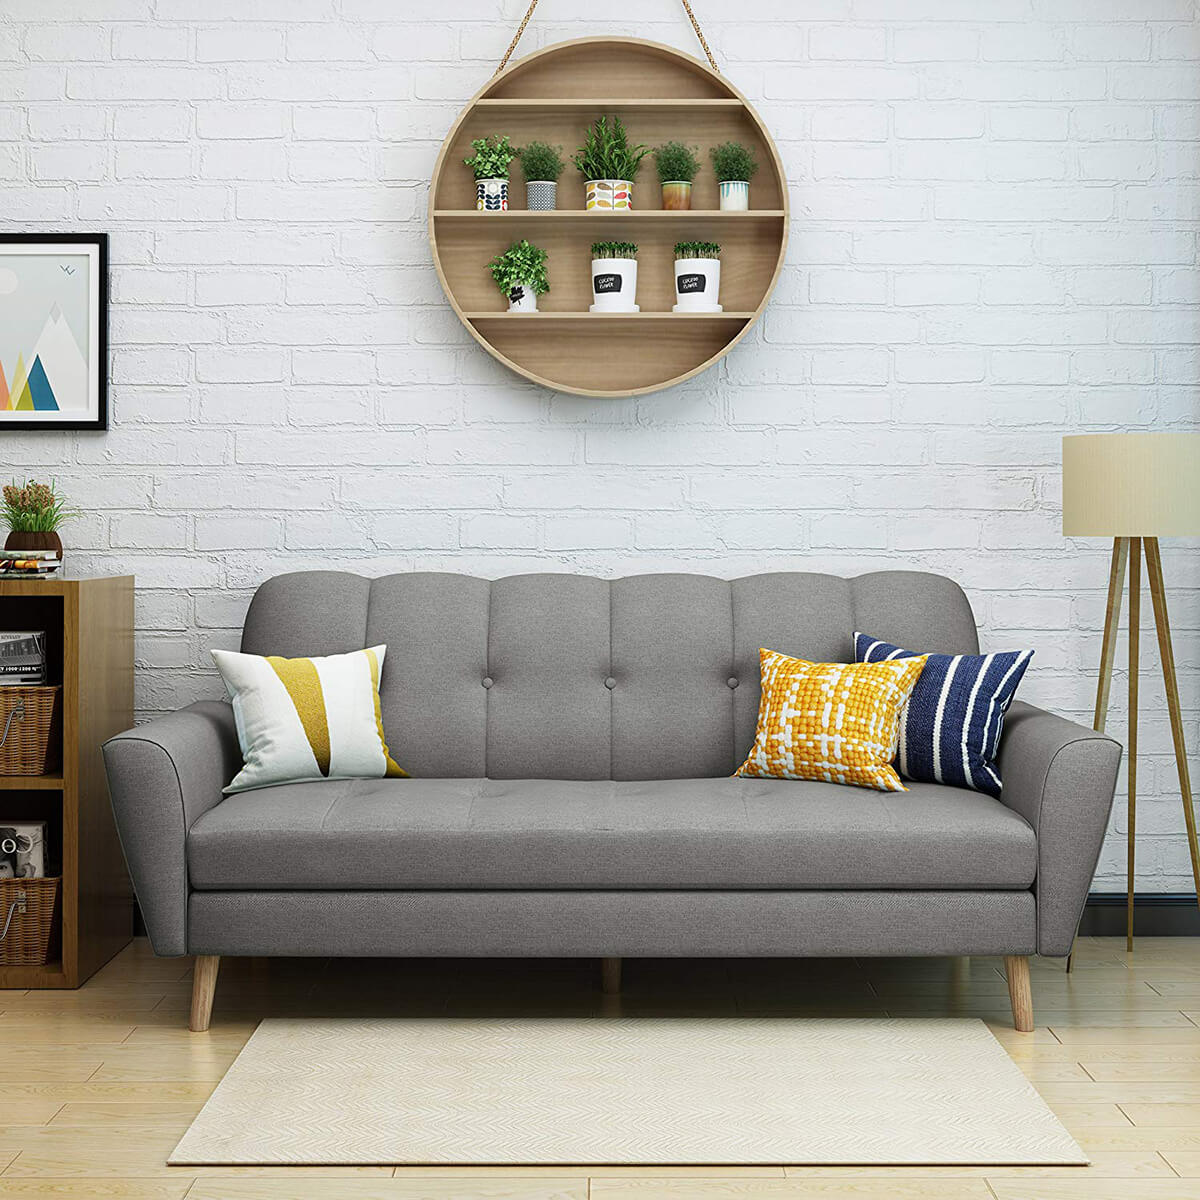 Sofas Can Fill a Supporting Role